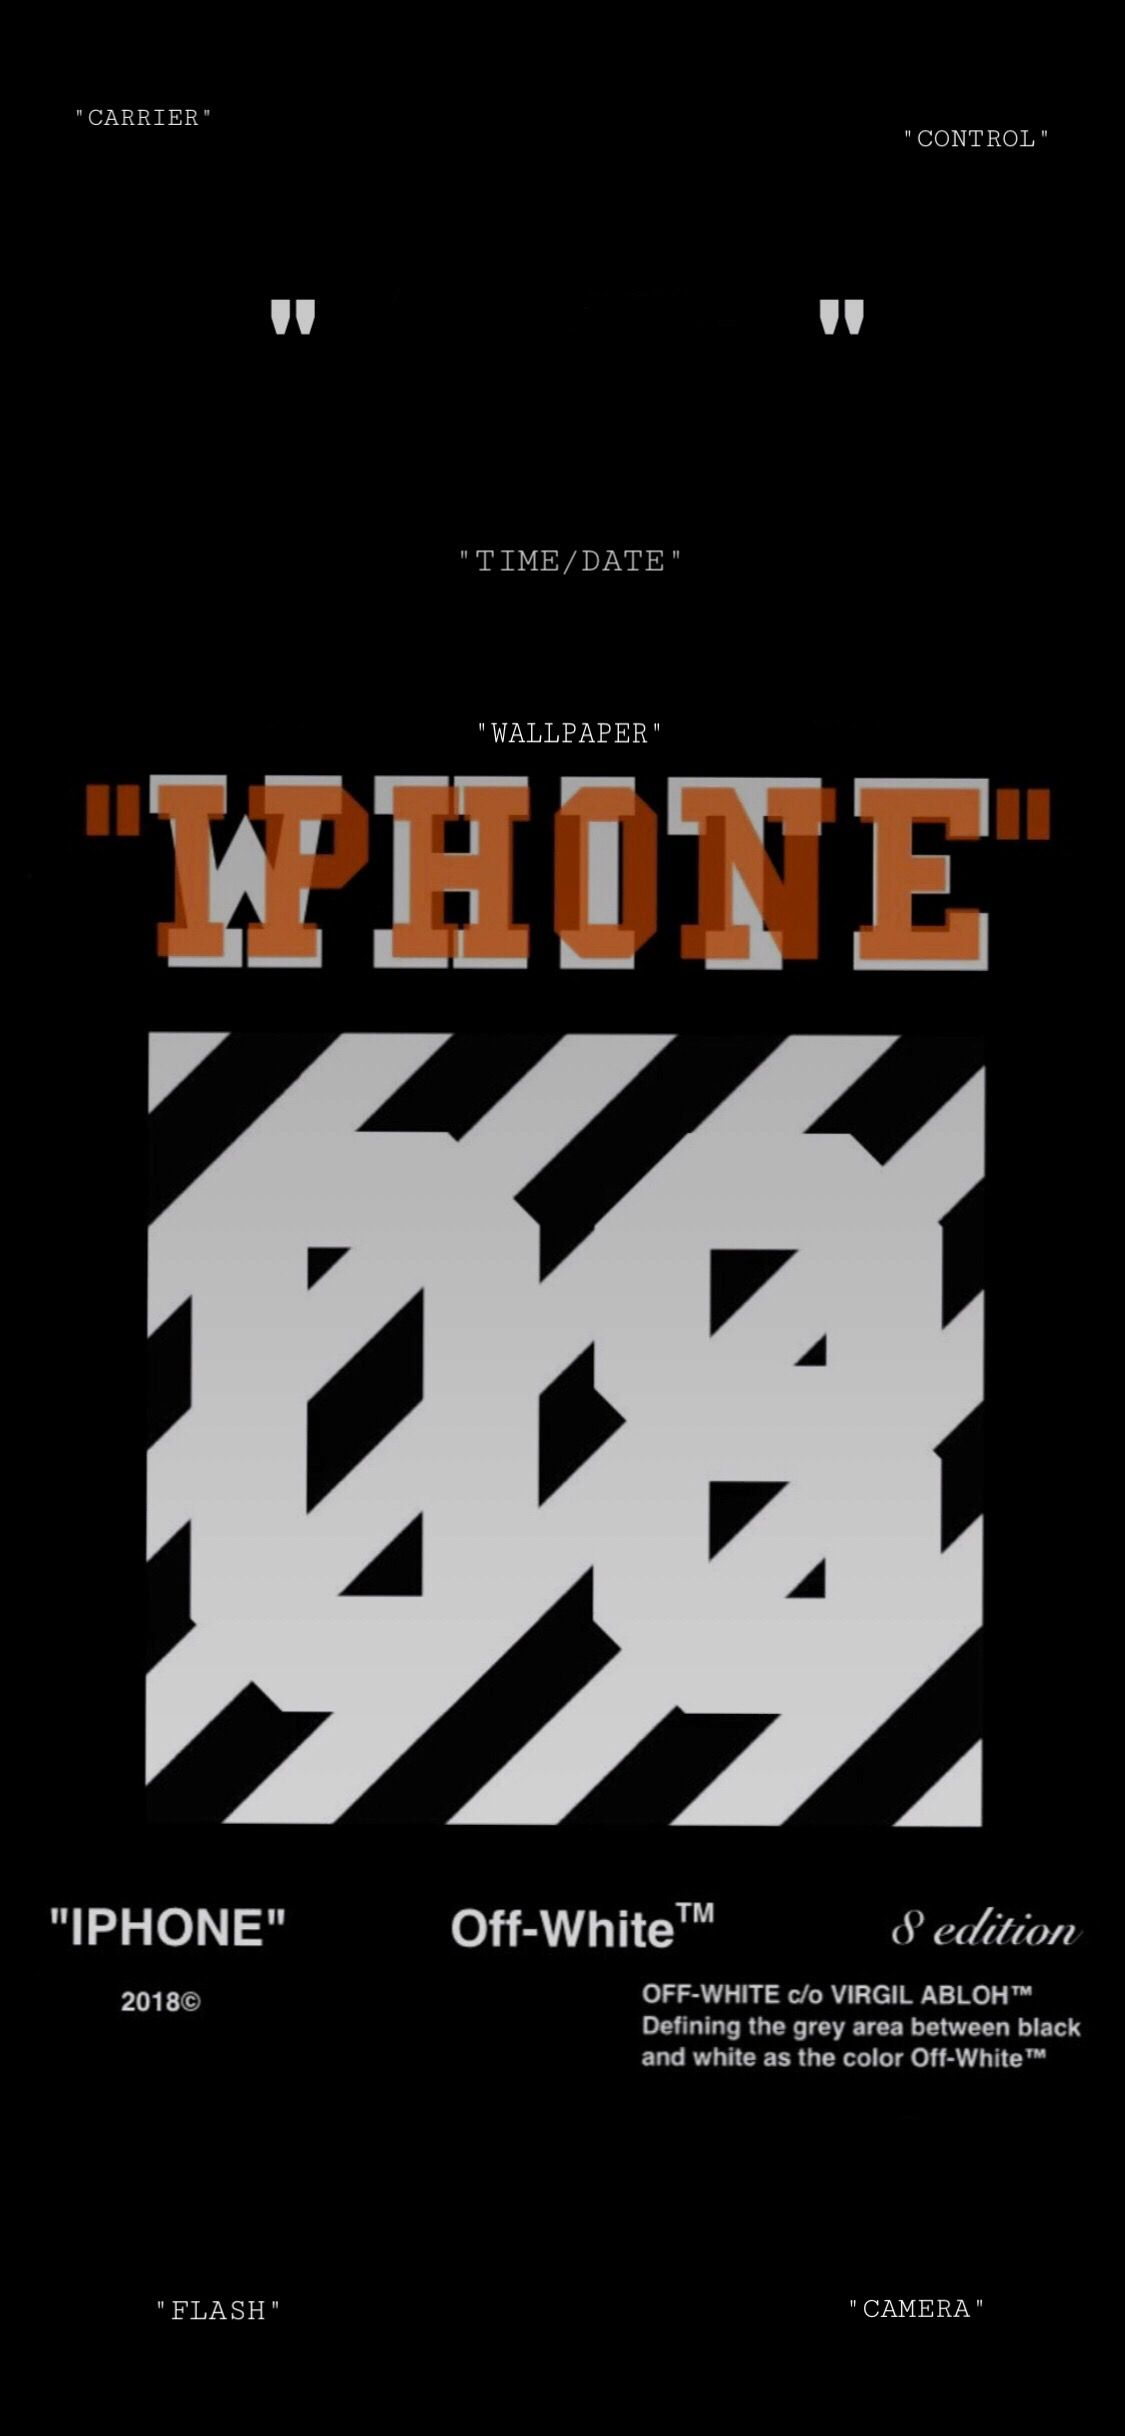 Offwhite Wallpaper For Iphone X Churhchillek In 2019 White